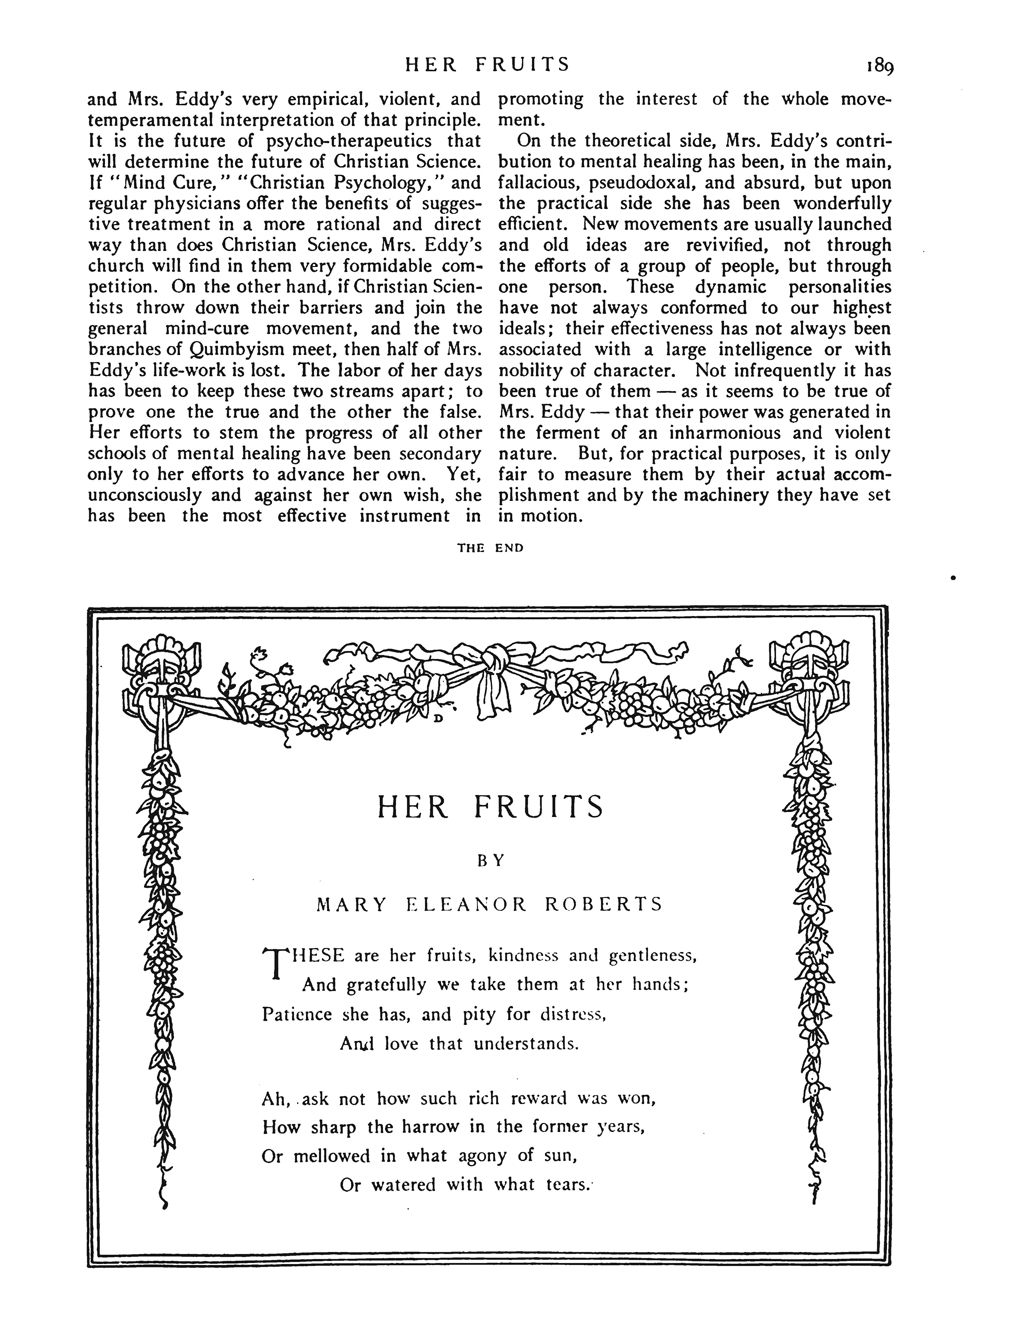 """Her Fruits"" by Mary Eleanor Roberts (McClure's Magazine May 1908, p. 189). Decorative frame by W.A. Dwiggins."